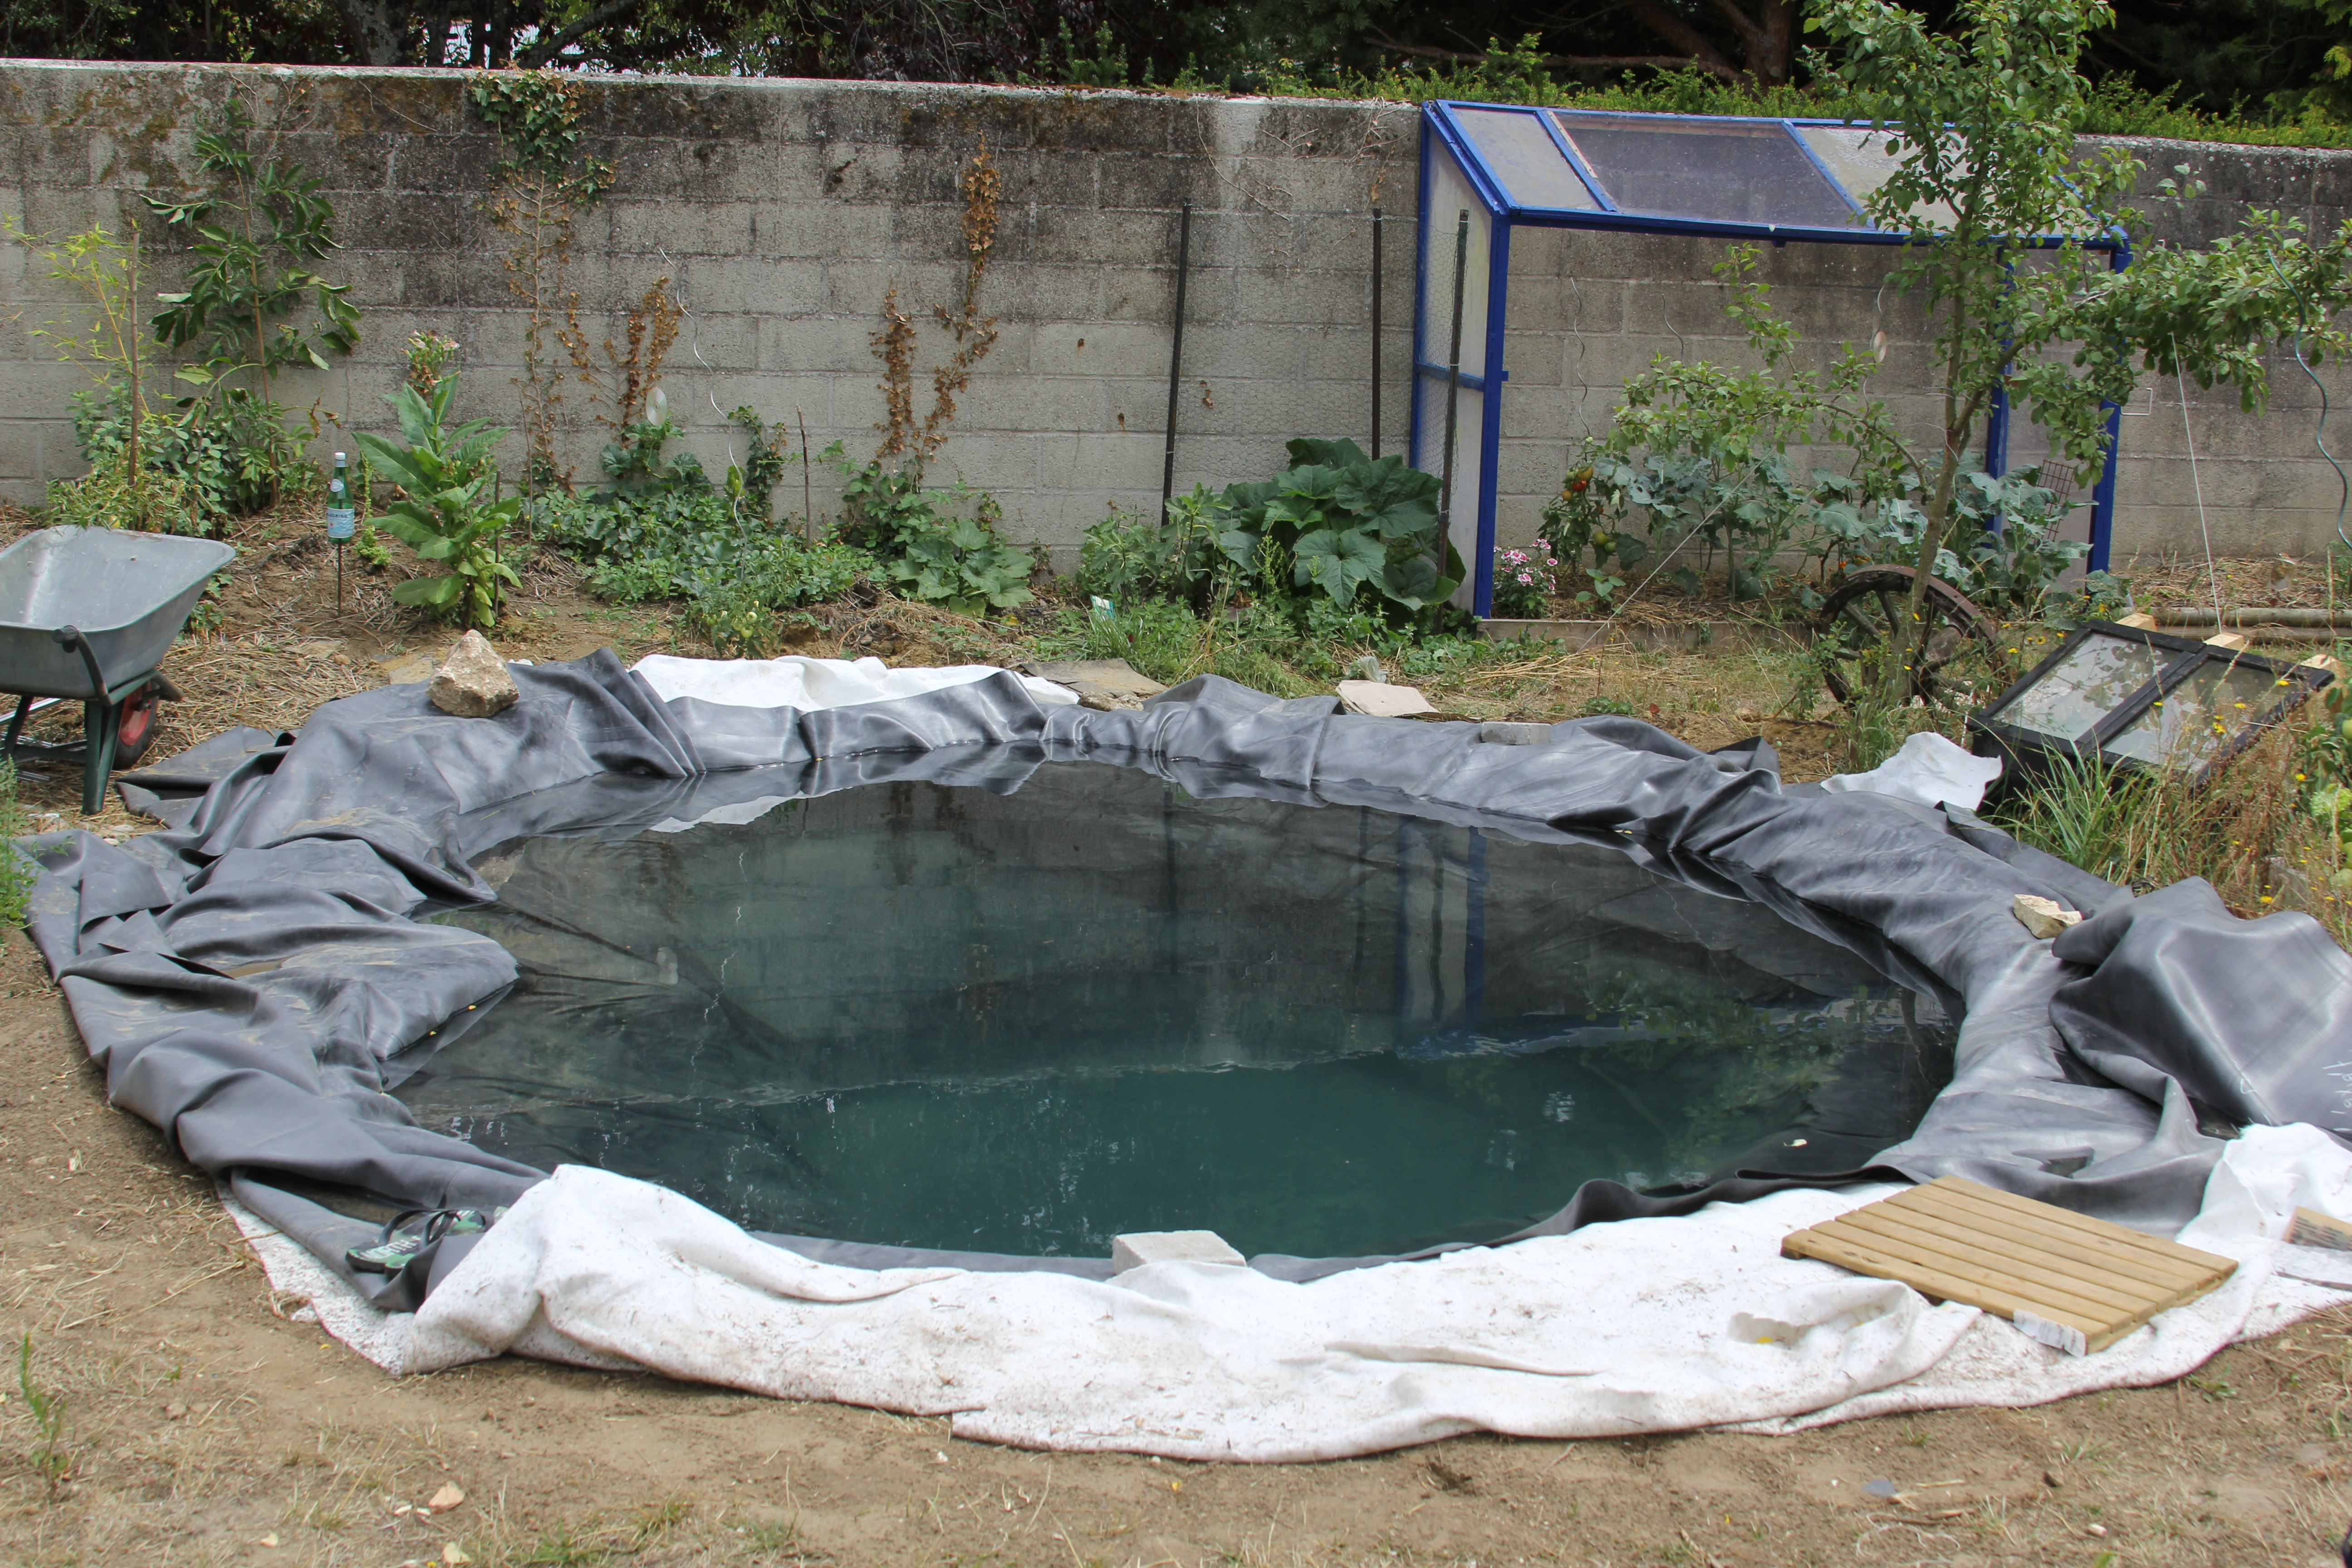 Faire un bassin artificiel dans son jardin aquaponie for Bache bassin poisson